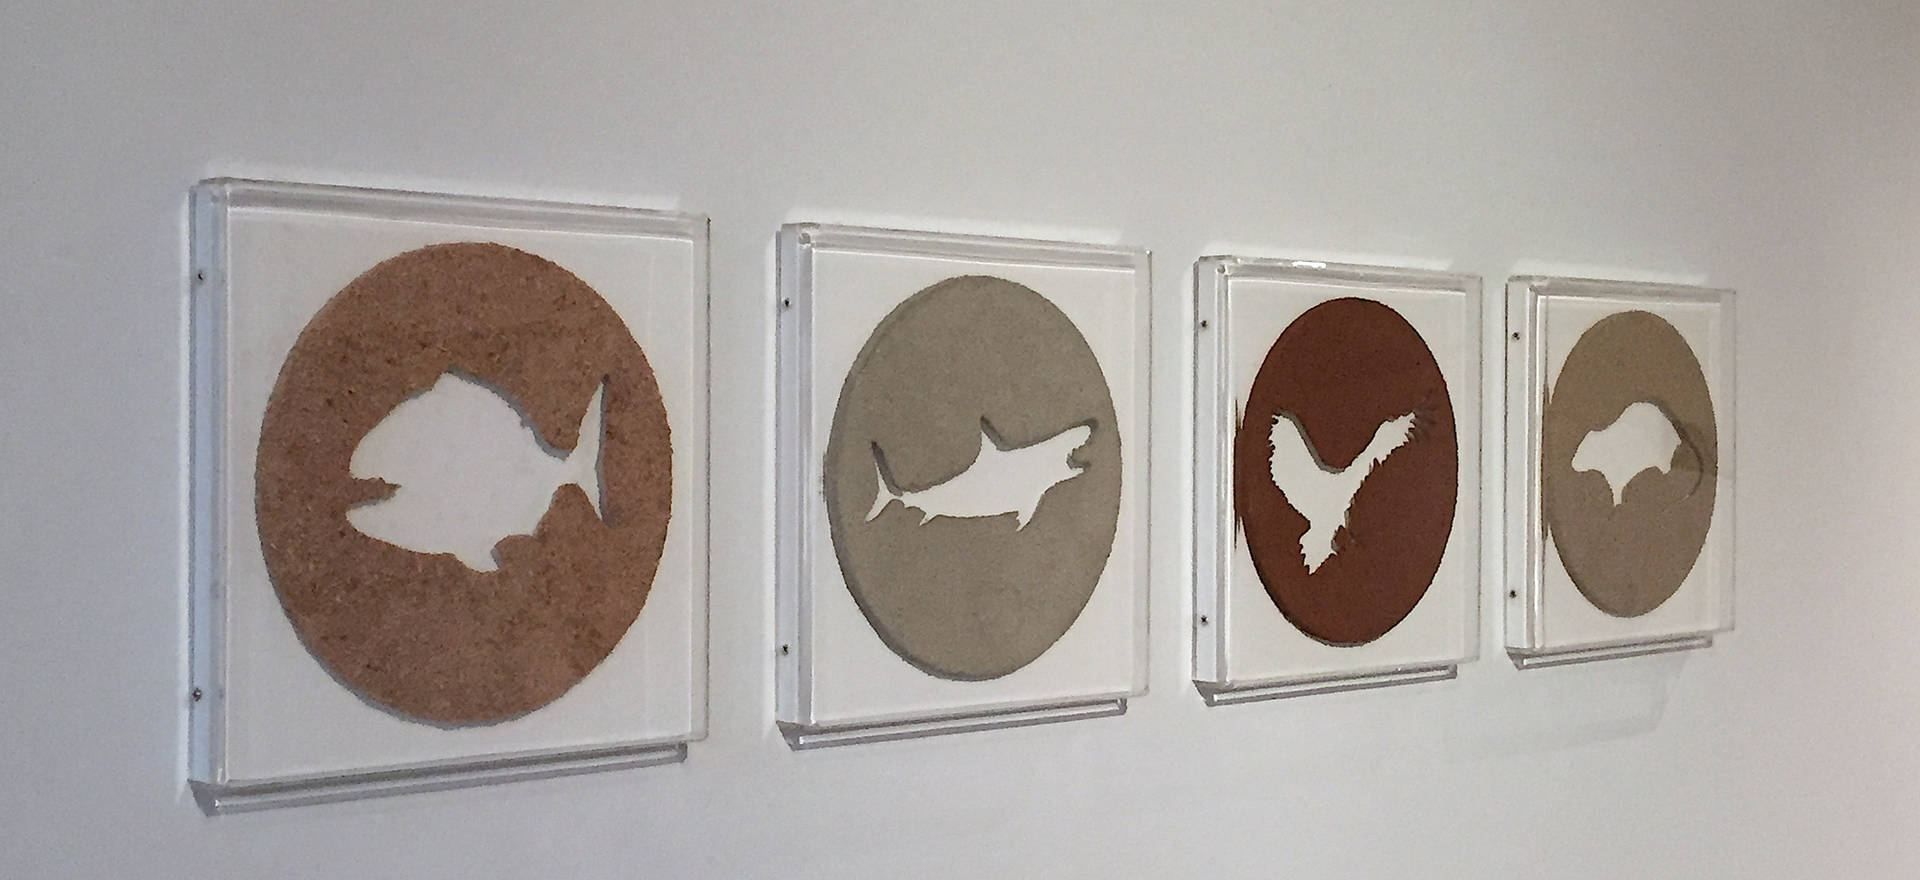 Economic fauna, 2016 Wood chips, sand, soil and cement. 12.12 x 12.12 x 1.45 inches each. 30.8 x 30.8 x 3.7 cm. each.